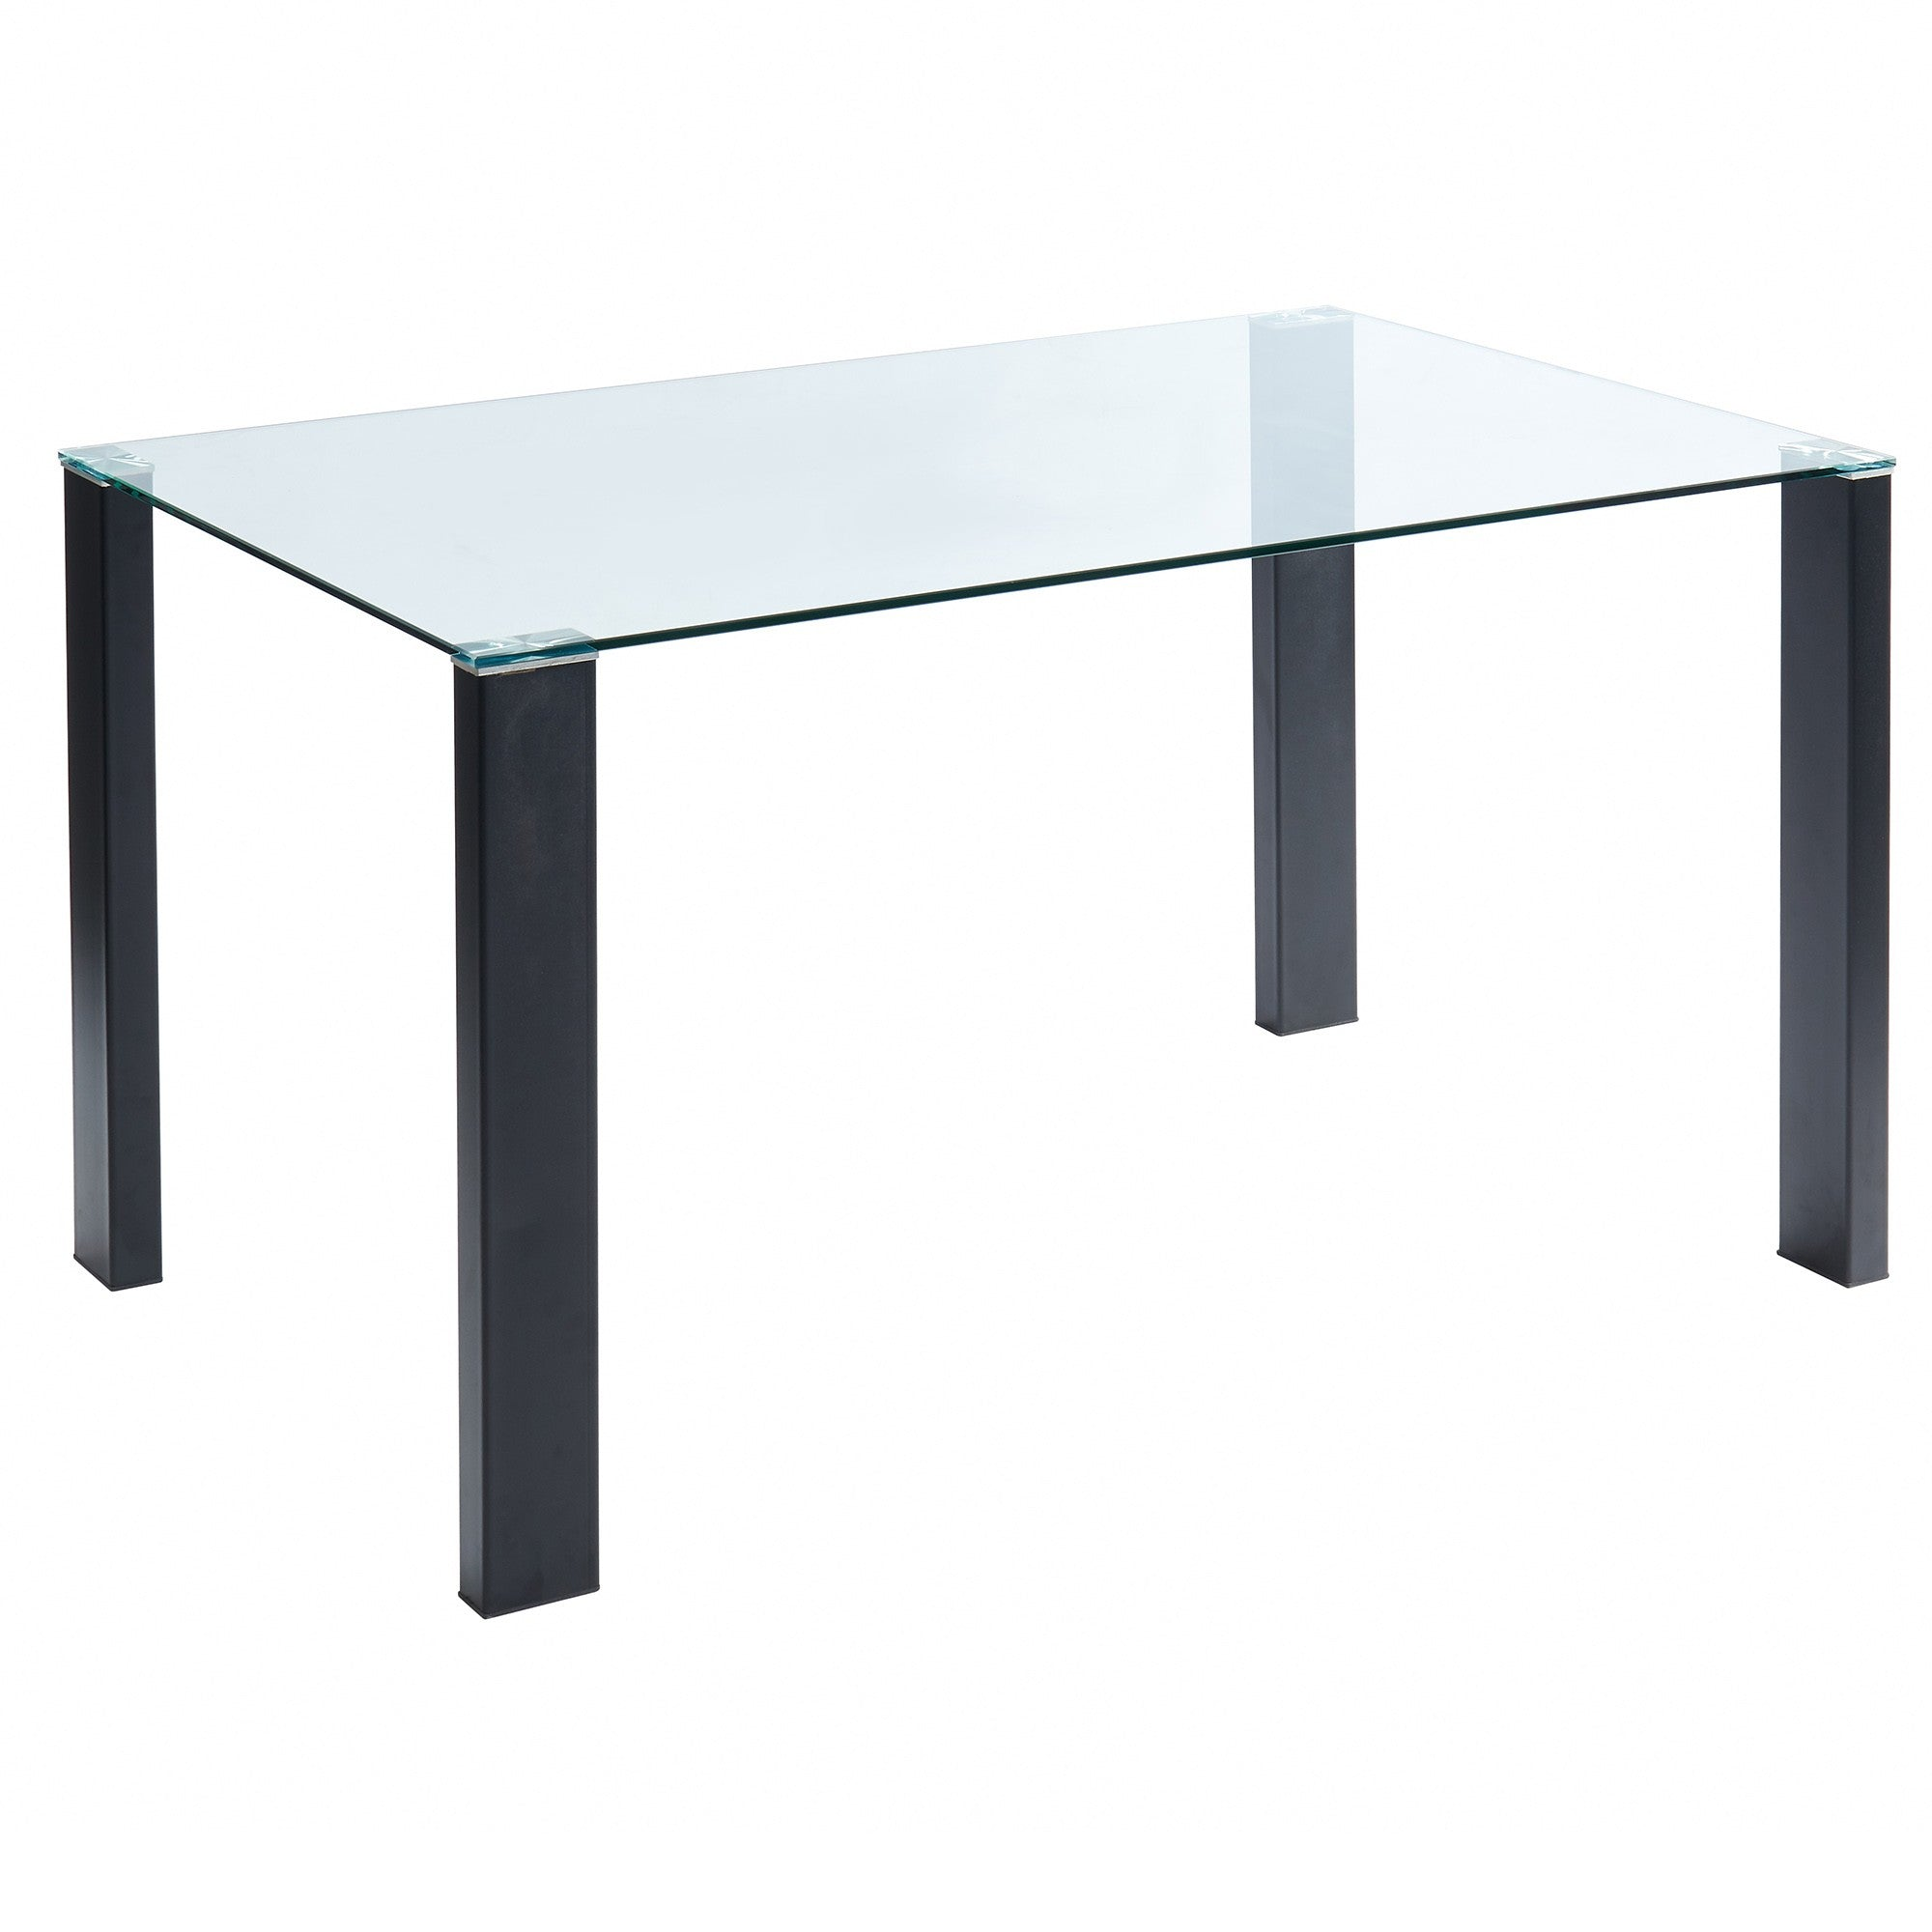 Vespa Rectangular Dining Table - Black